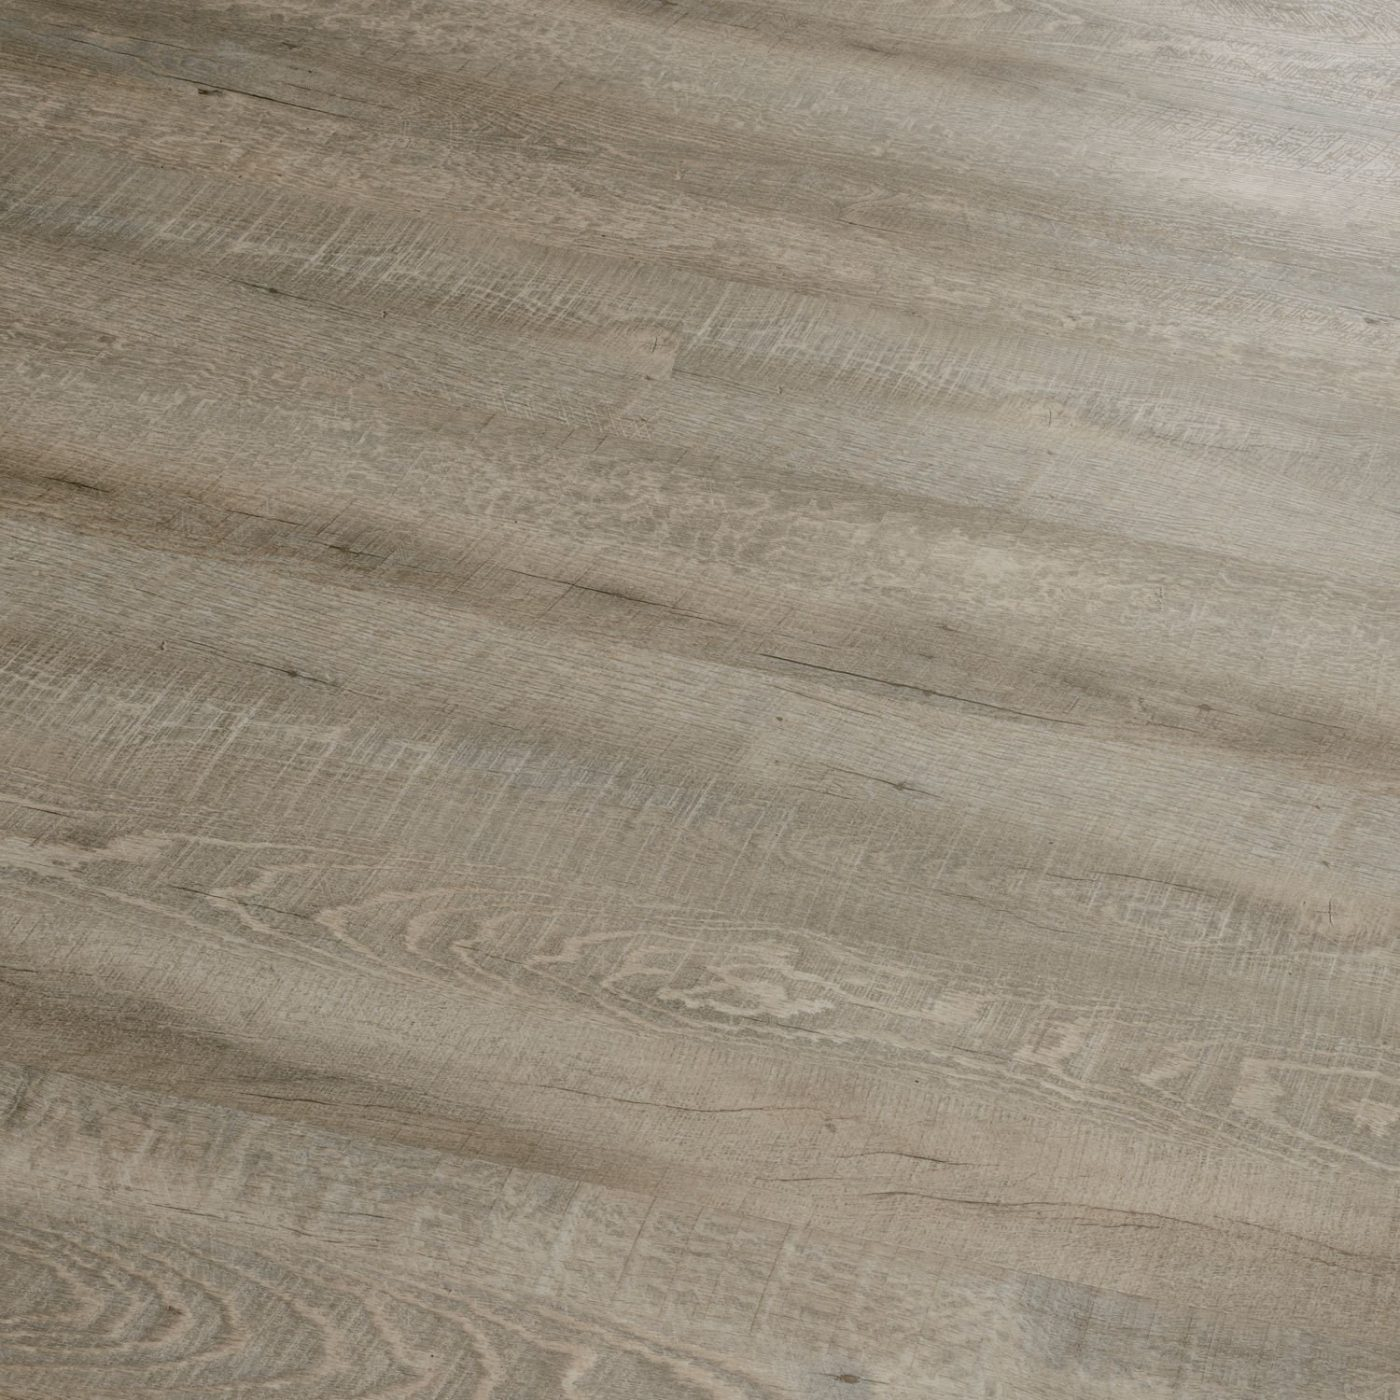 Starfloor Plank Smoked Oak Light Tarkett Starfloor